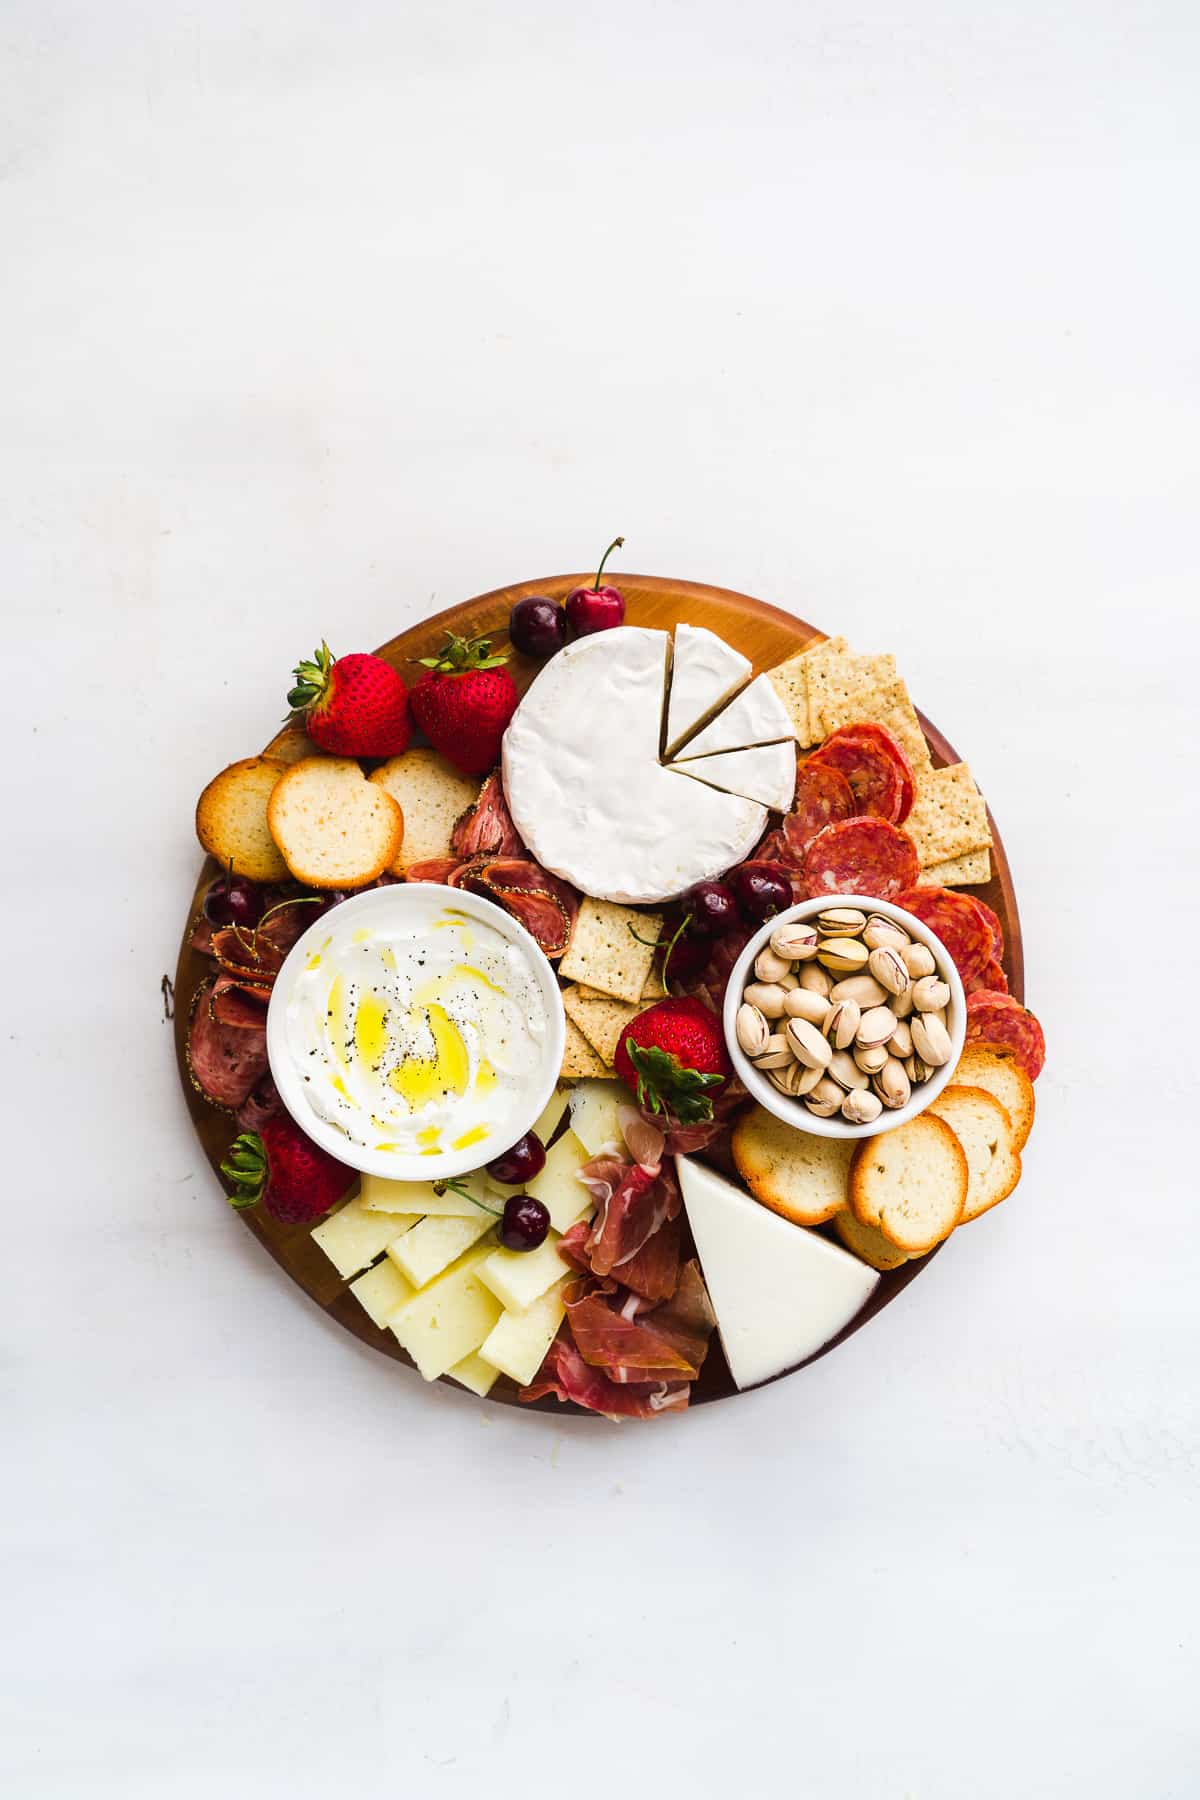 Charcuterie board with meats and bowls on a white surface.